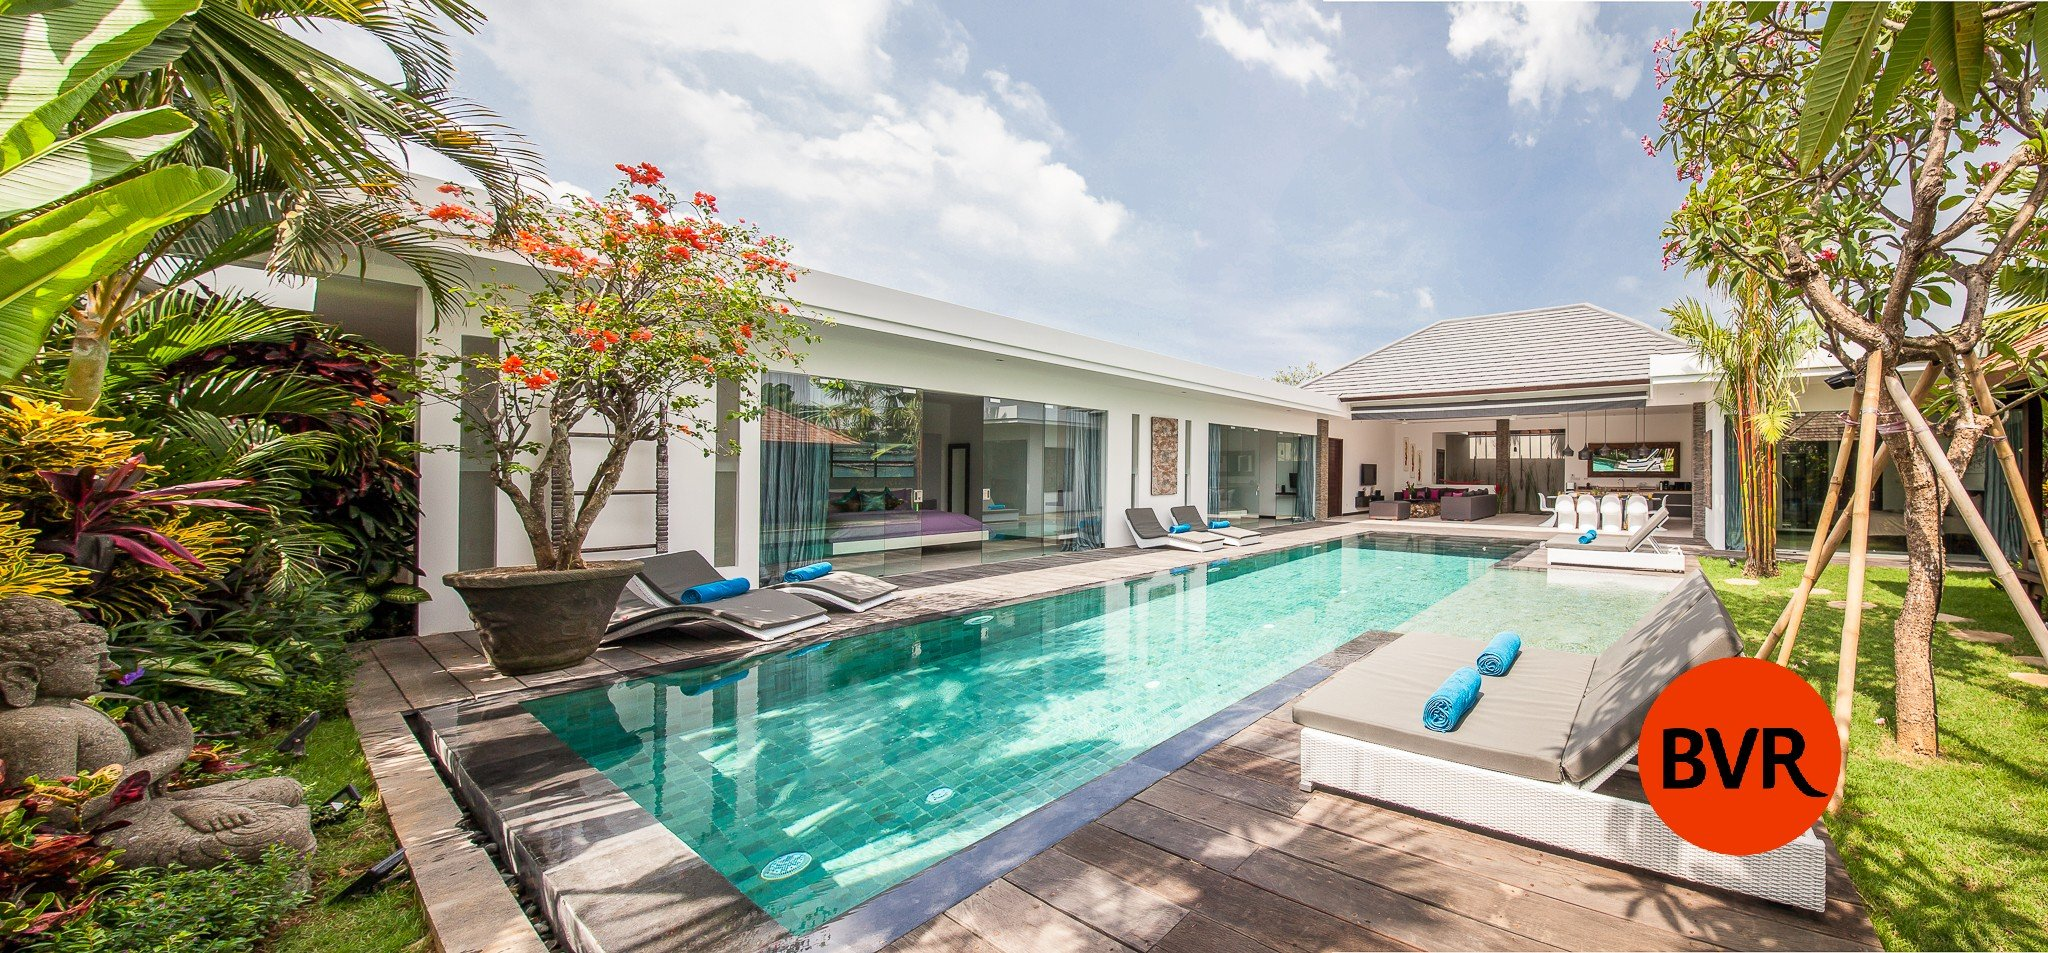 3 Bedroom Stunning Villa Complex For Sale In Canggu [Sold]